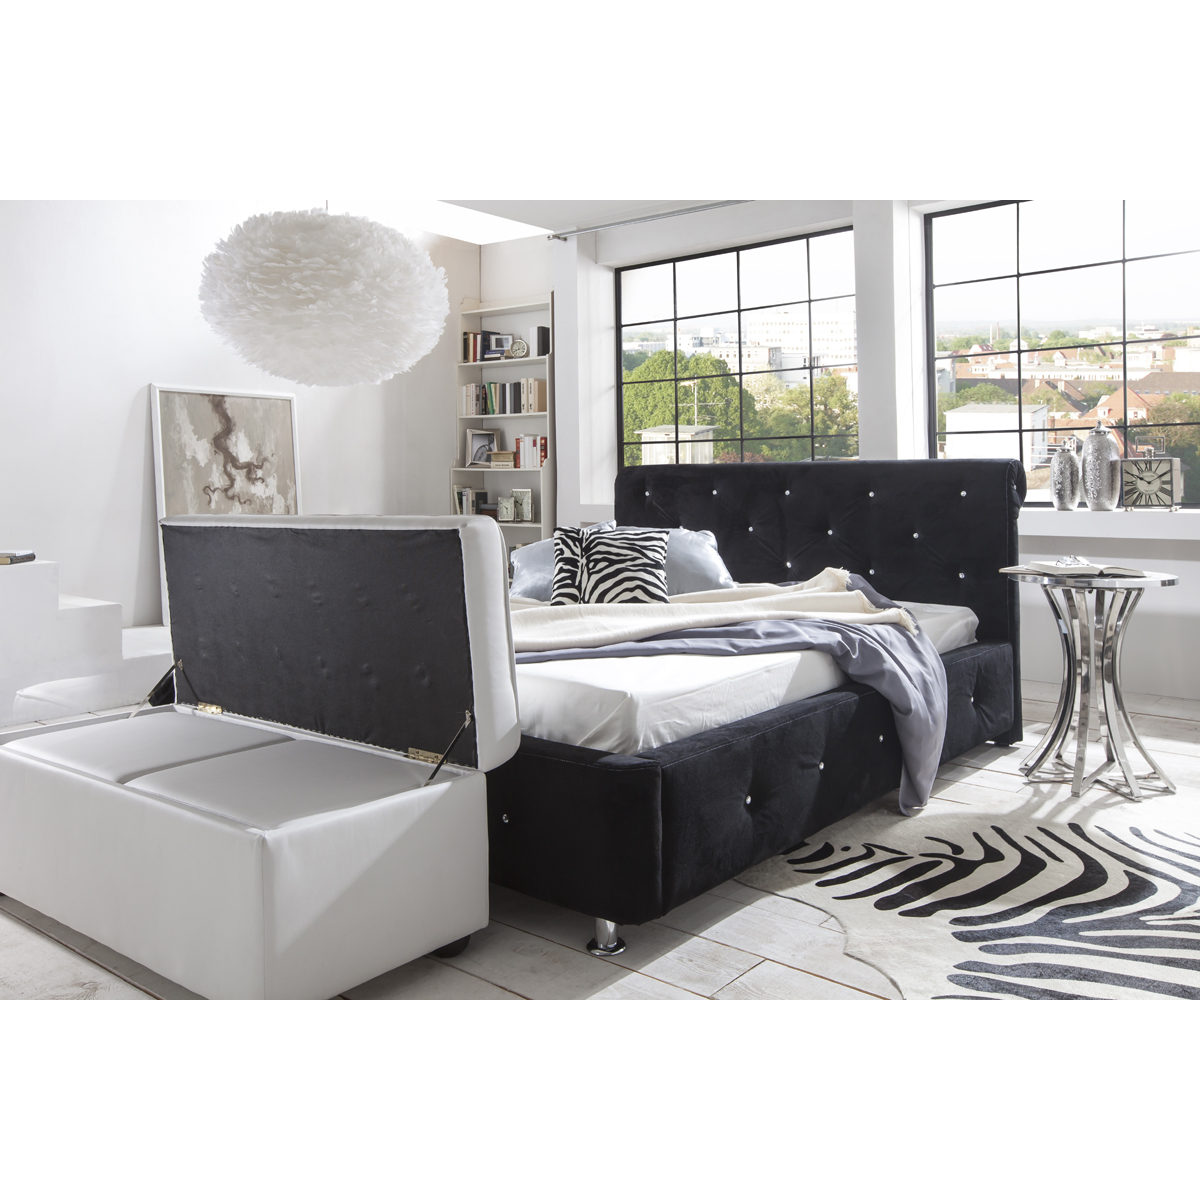 als sitztruhe oder ankleidebank ist der billy eine tolle erg nzung zu den betten von moebel. Black Bedroom Furniture Sets. Home Design Ideas